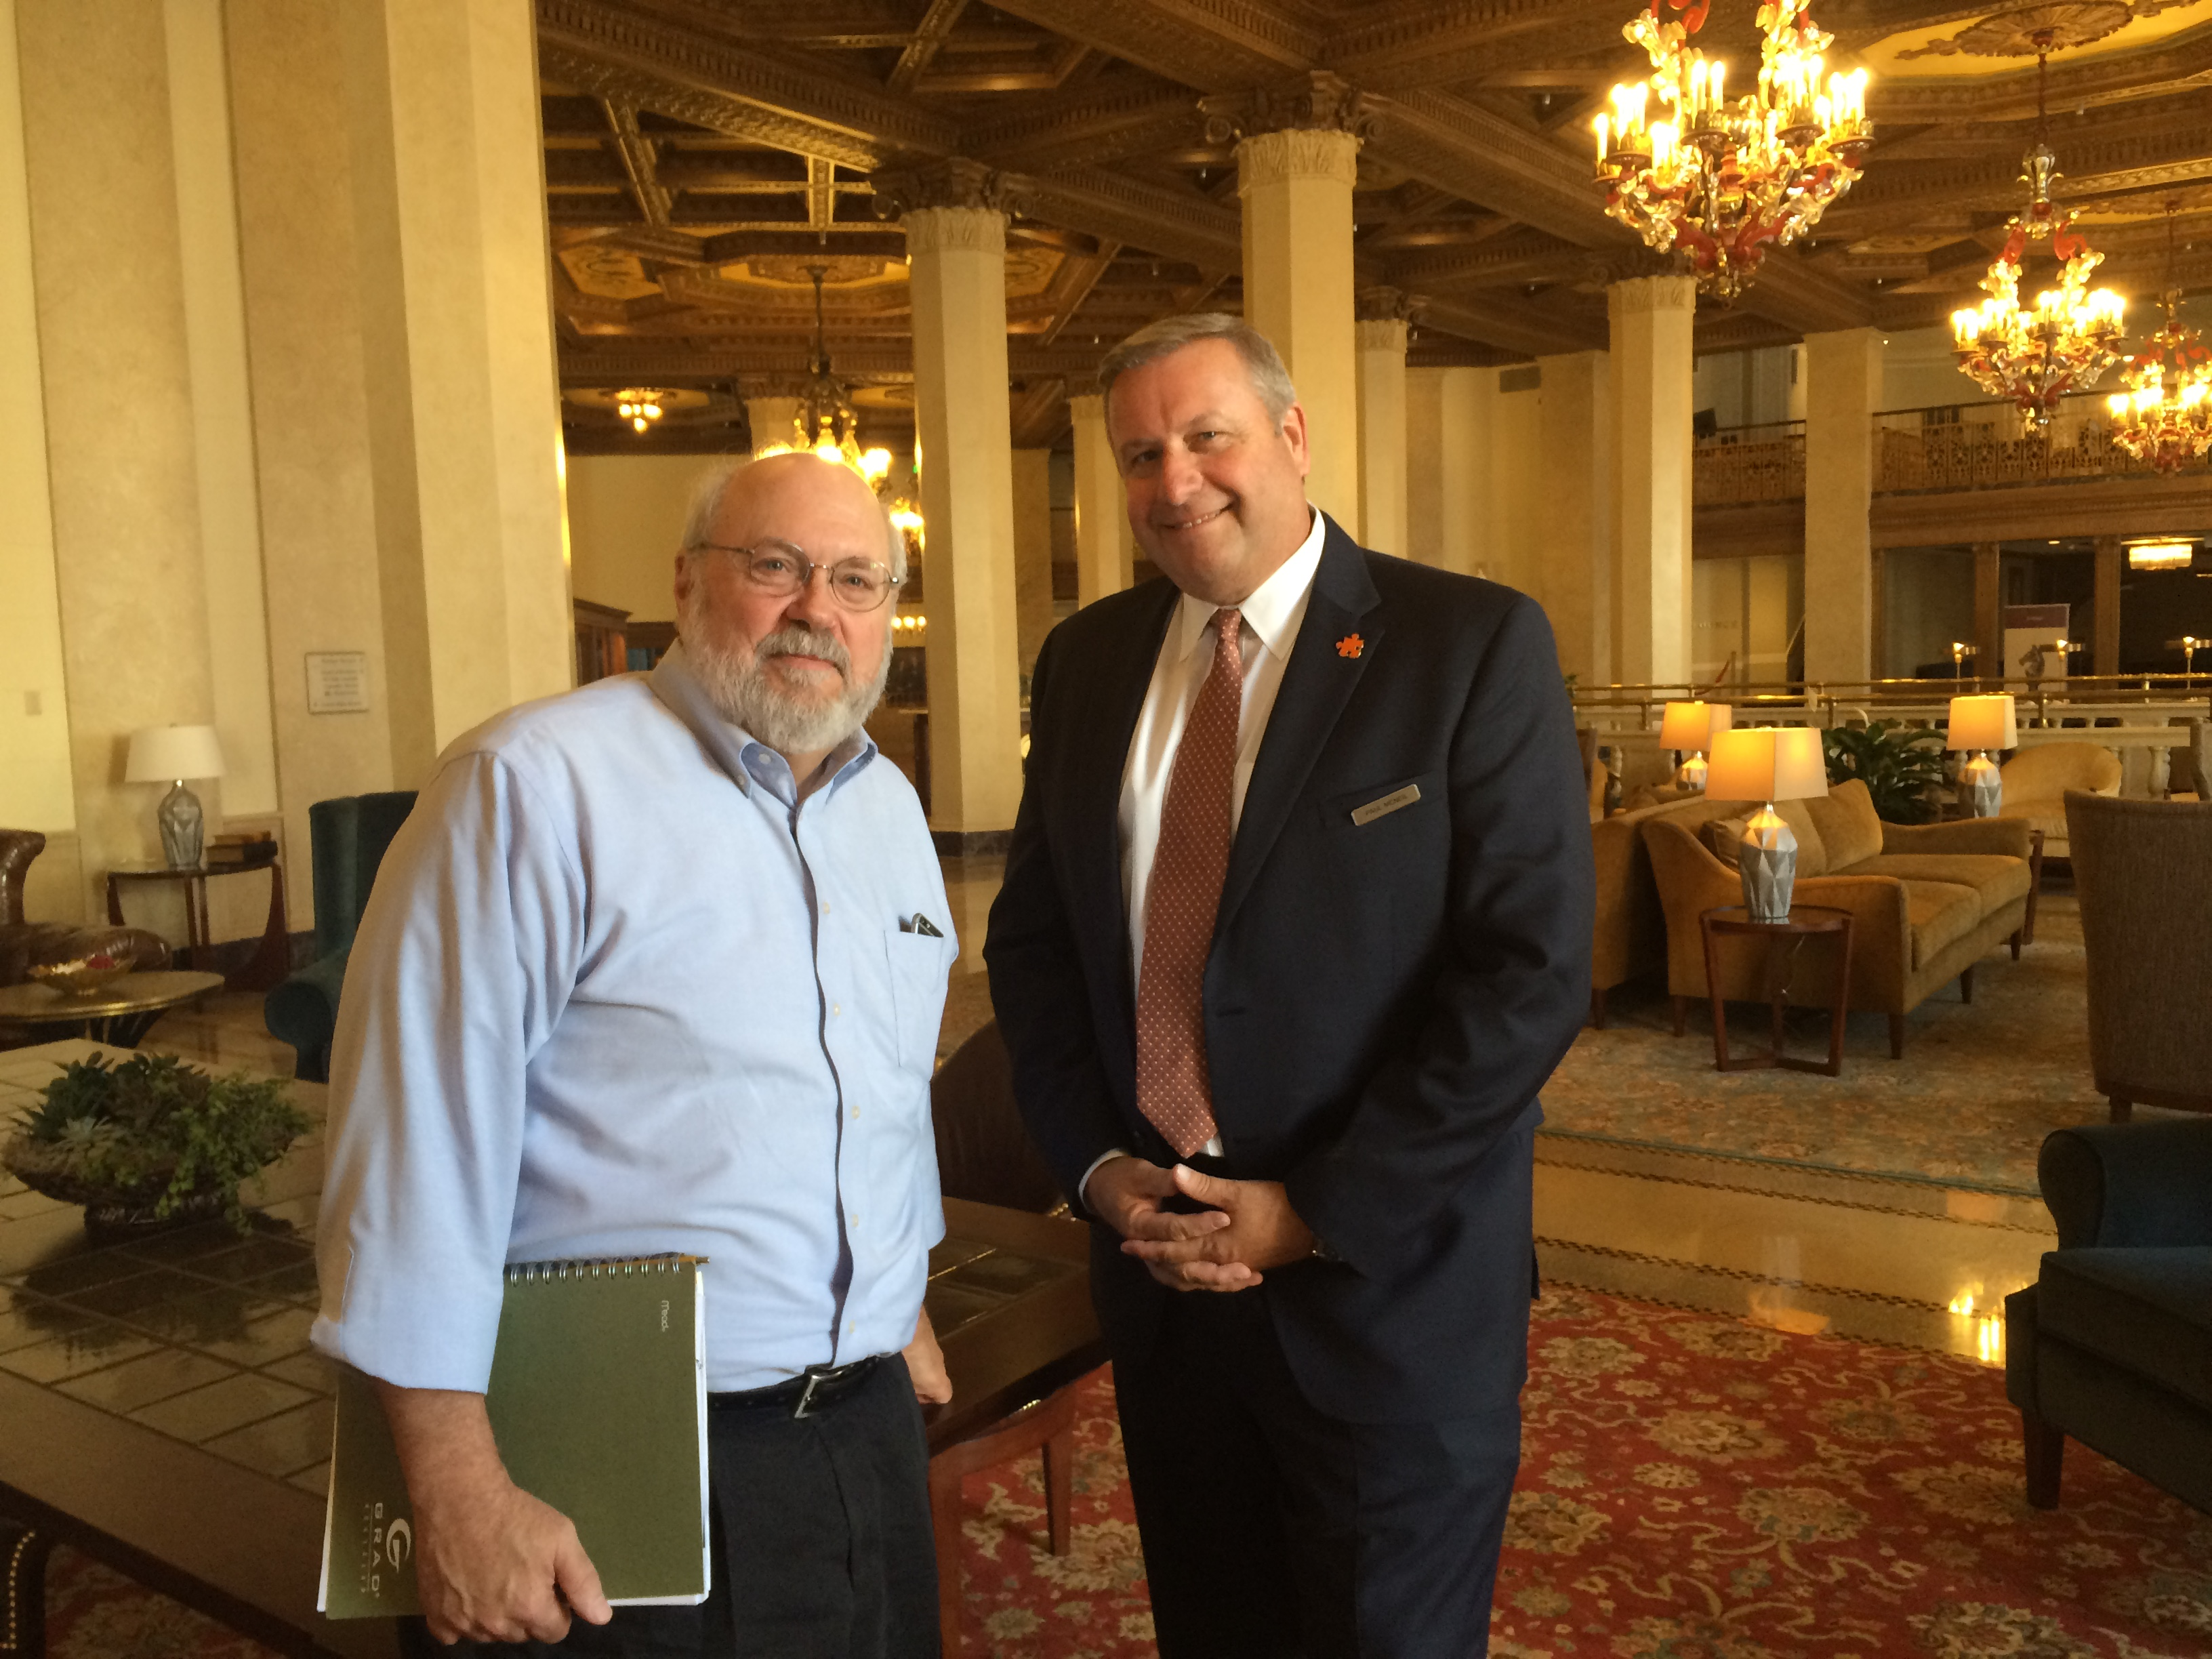 Developer Ed Riley and Paul McNeil, hotel general manager and a Buffalo native, in the lobby of the restored Marriott Syracuse Downtown, traditionally called the  Hotel Syracuse. Riley plans to submit a proposal for restoring the Hotel Niagara. (Sean Kirst/Submitted image)